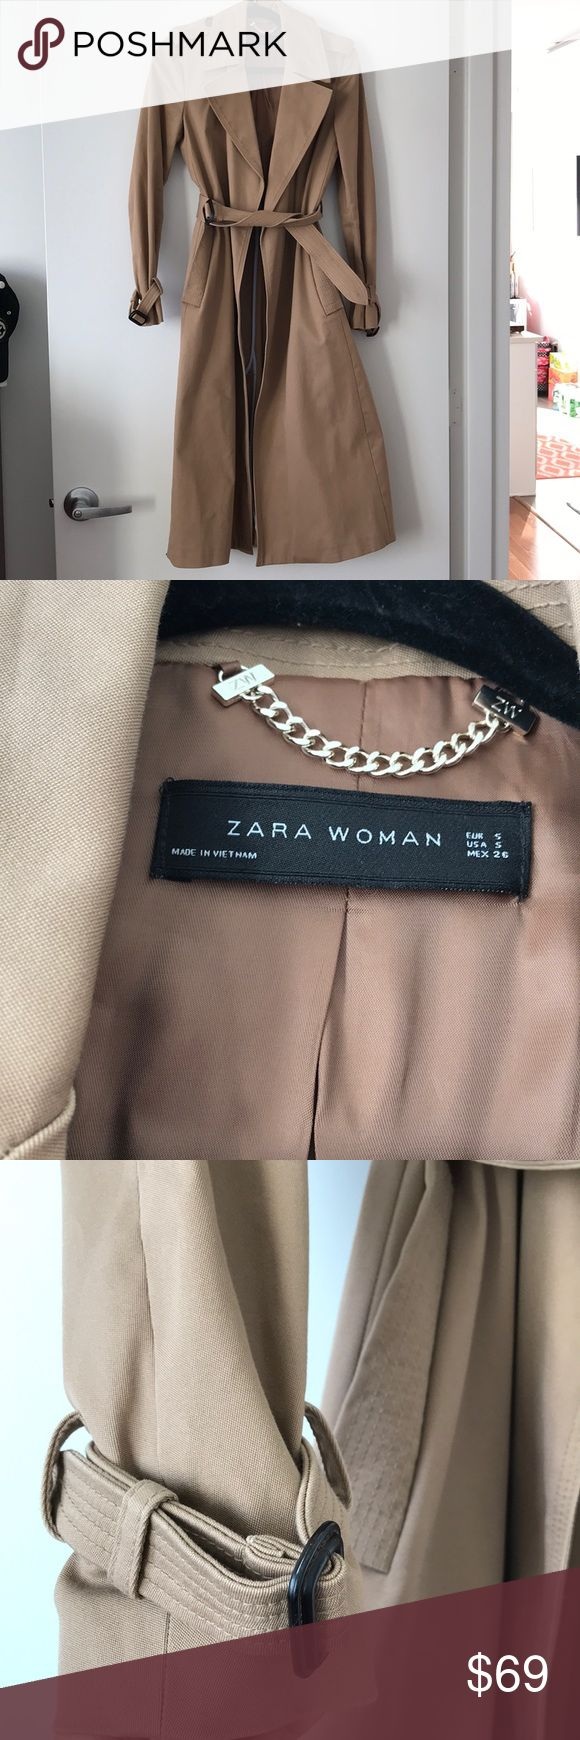 """Zara long camel trench coat Gorgeous (worn once!) camel trench coat. I am 5'4"""" and length drops to about lower calf area.  Size small Wrist adjustable strap detailing  Belt  Can be worn open or tied I'm pregnant so I'm selling because it no longer fits  Slightly narrow in shoulders, as I find most Zara clothes run narrow.  Classic color and shape that will never go out of style Zara Jackets & Coats Trench Coats"""